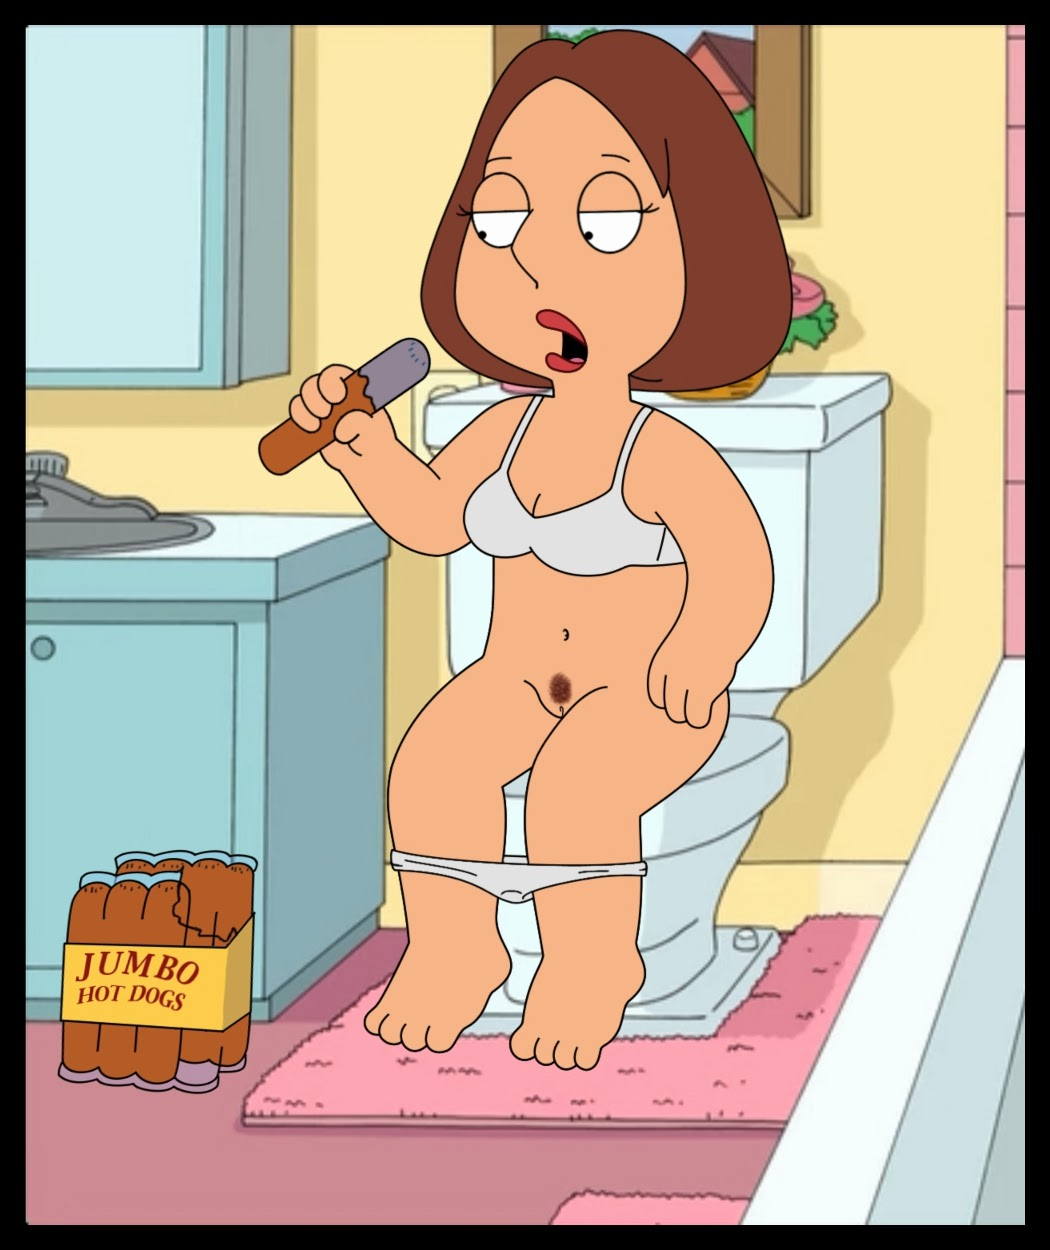 the naked family guy